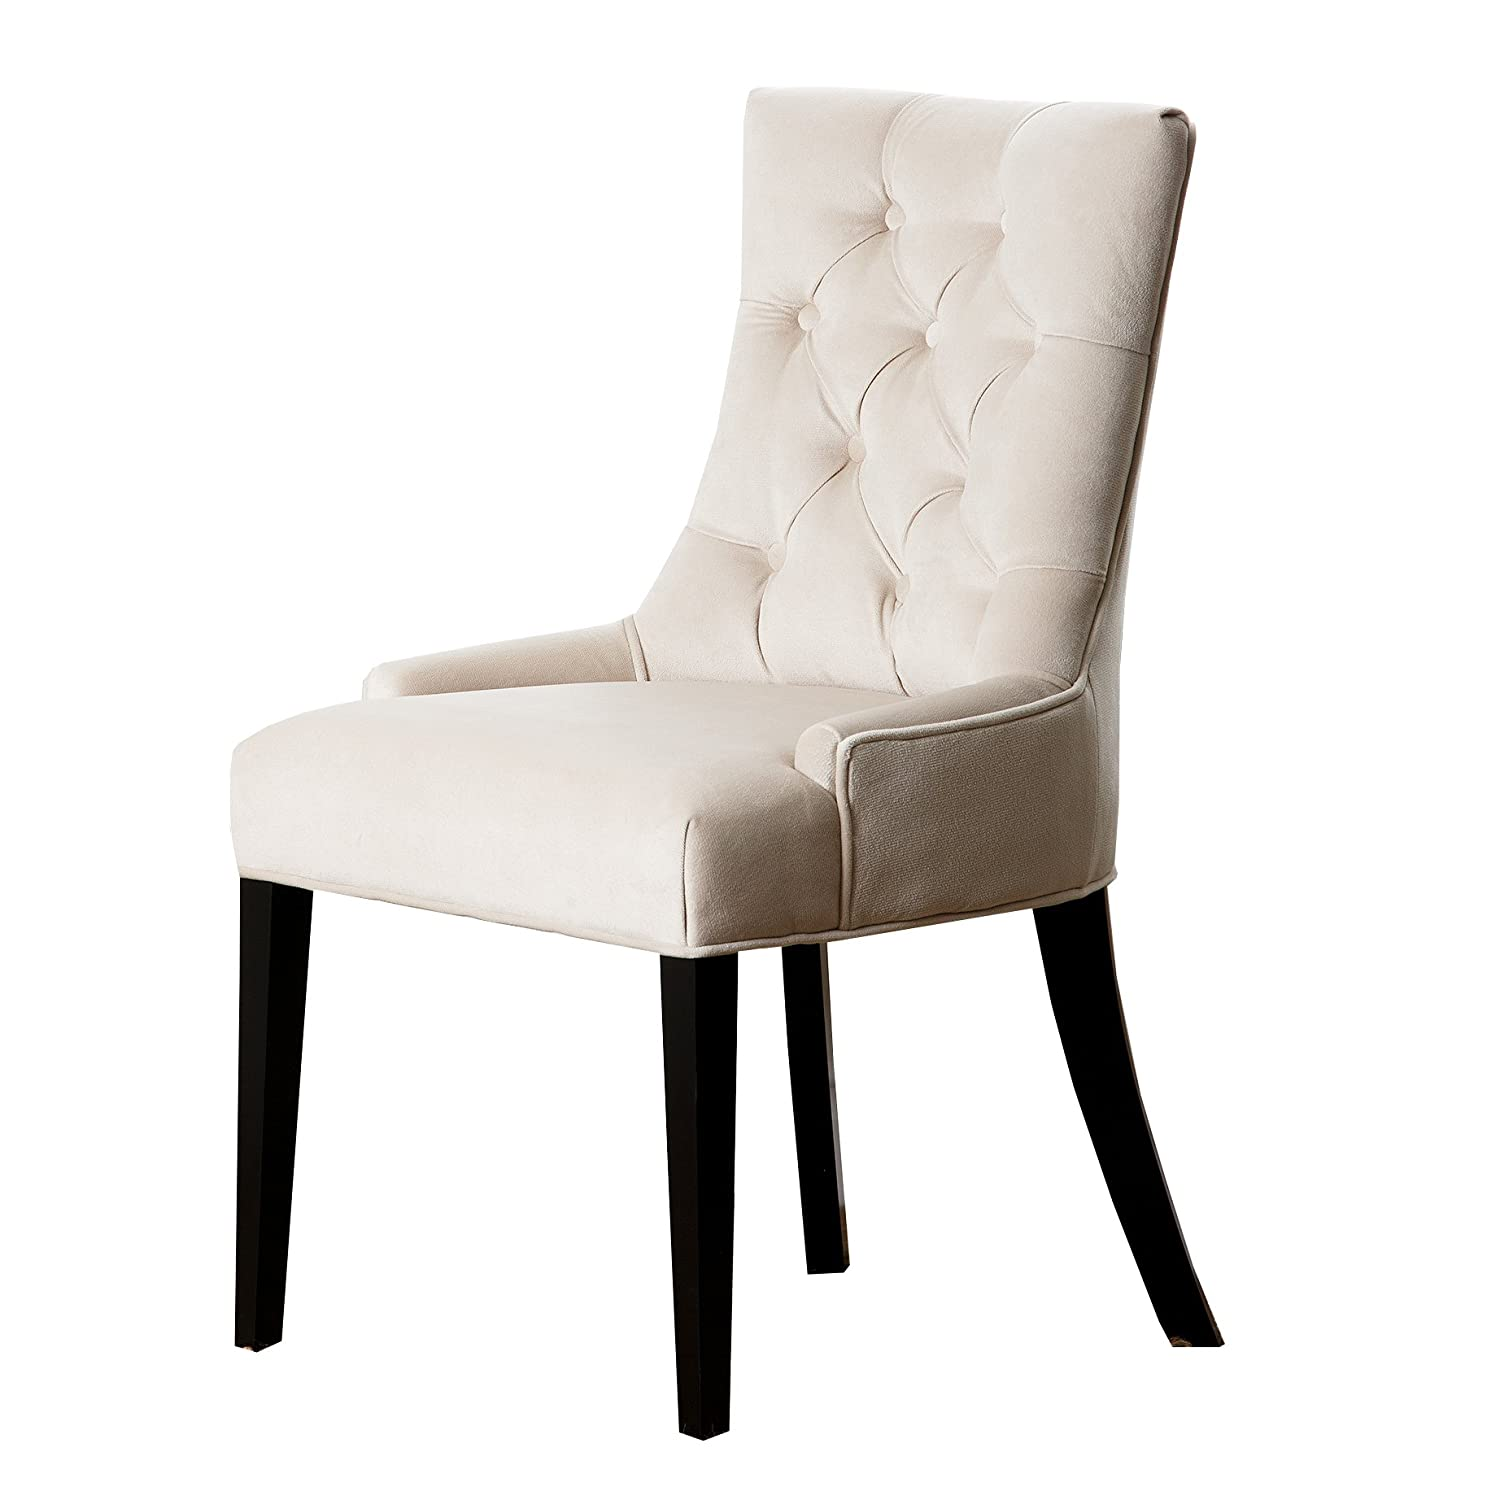 amazoncom abbyson zuma cream microsuede tufted dining chair chairs